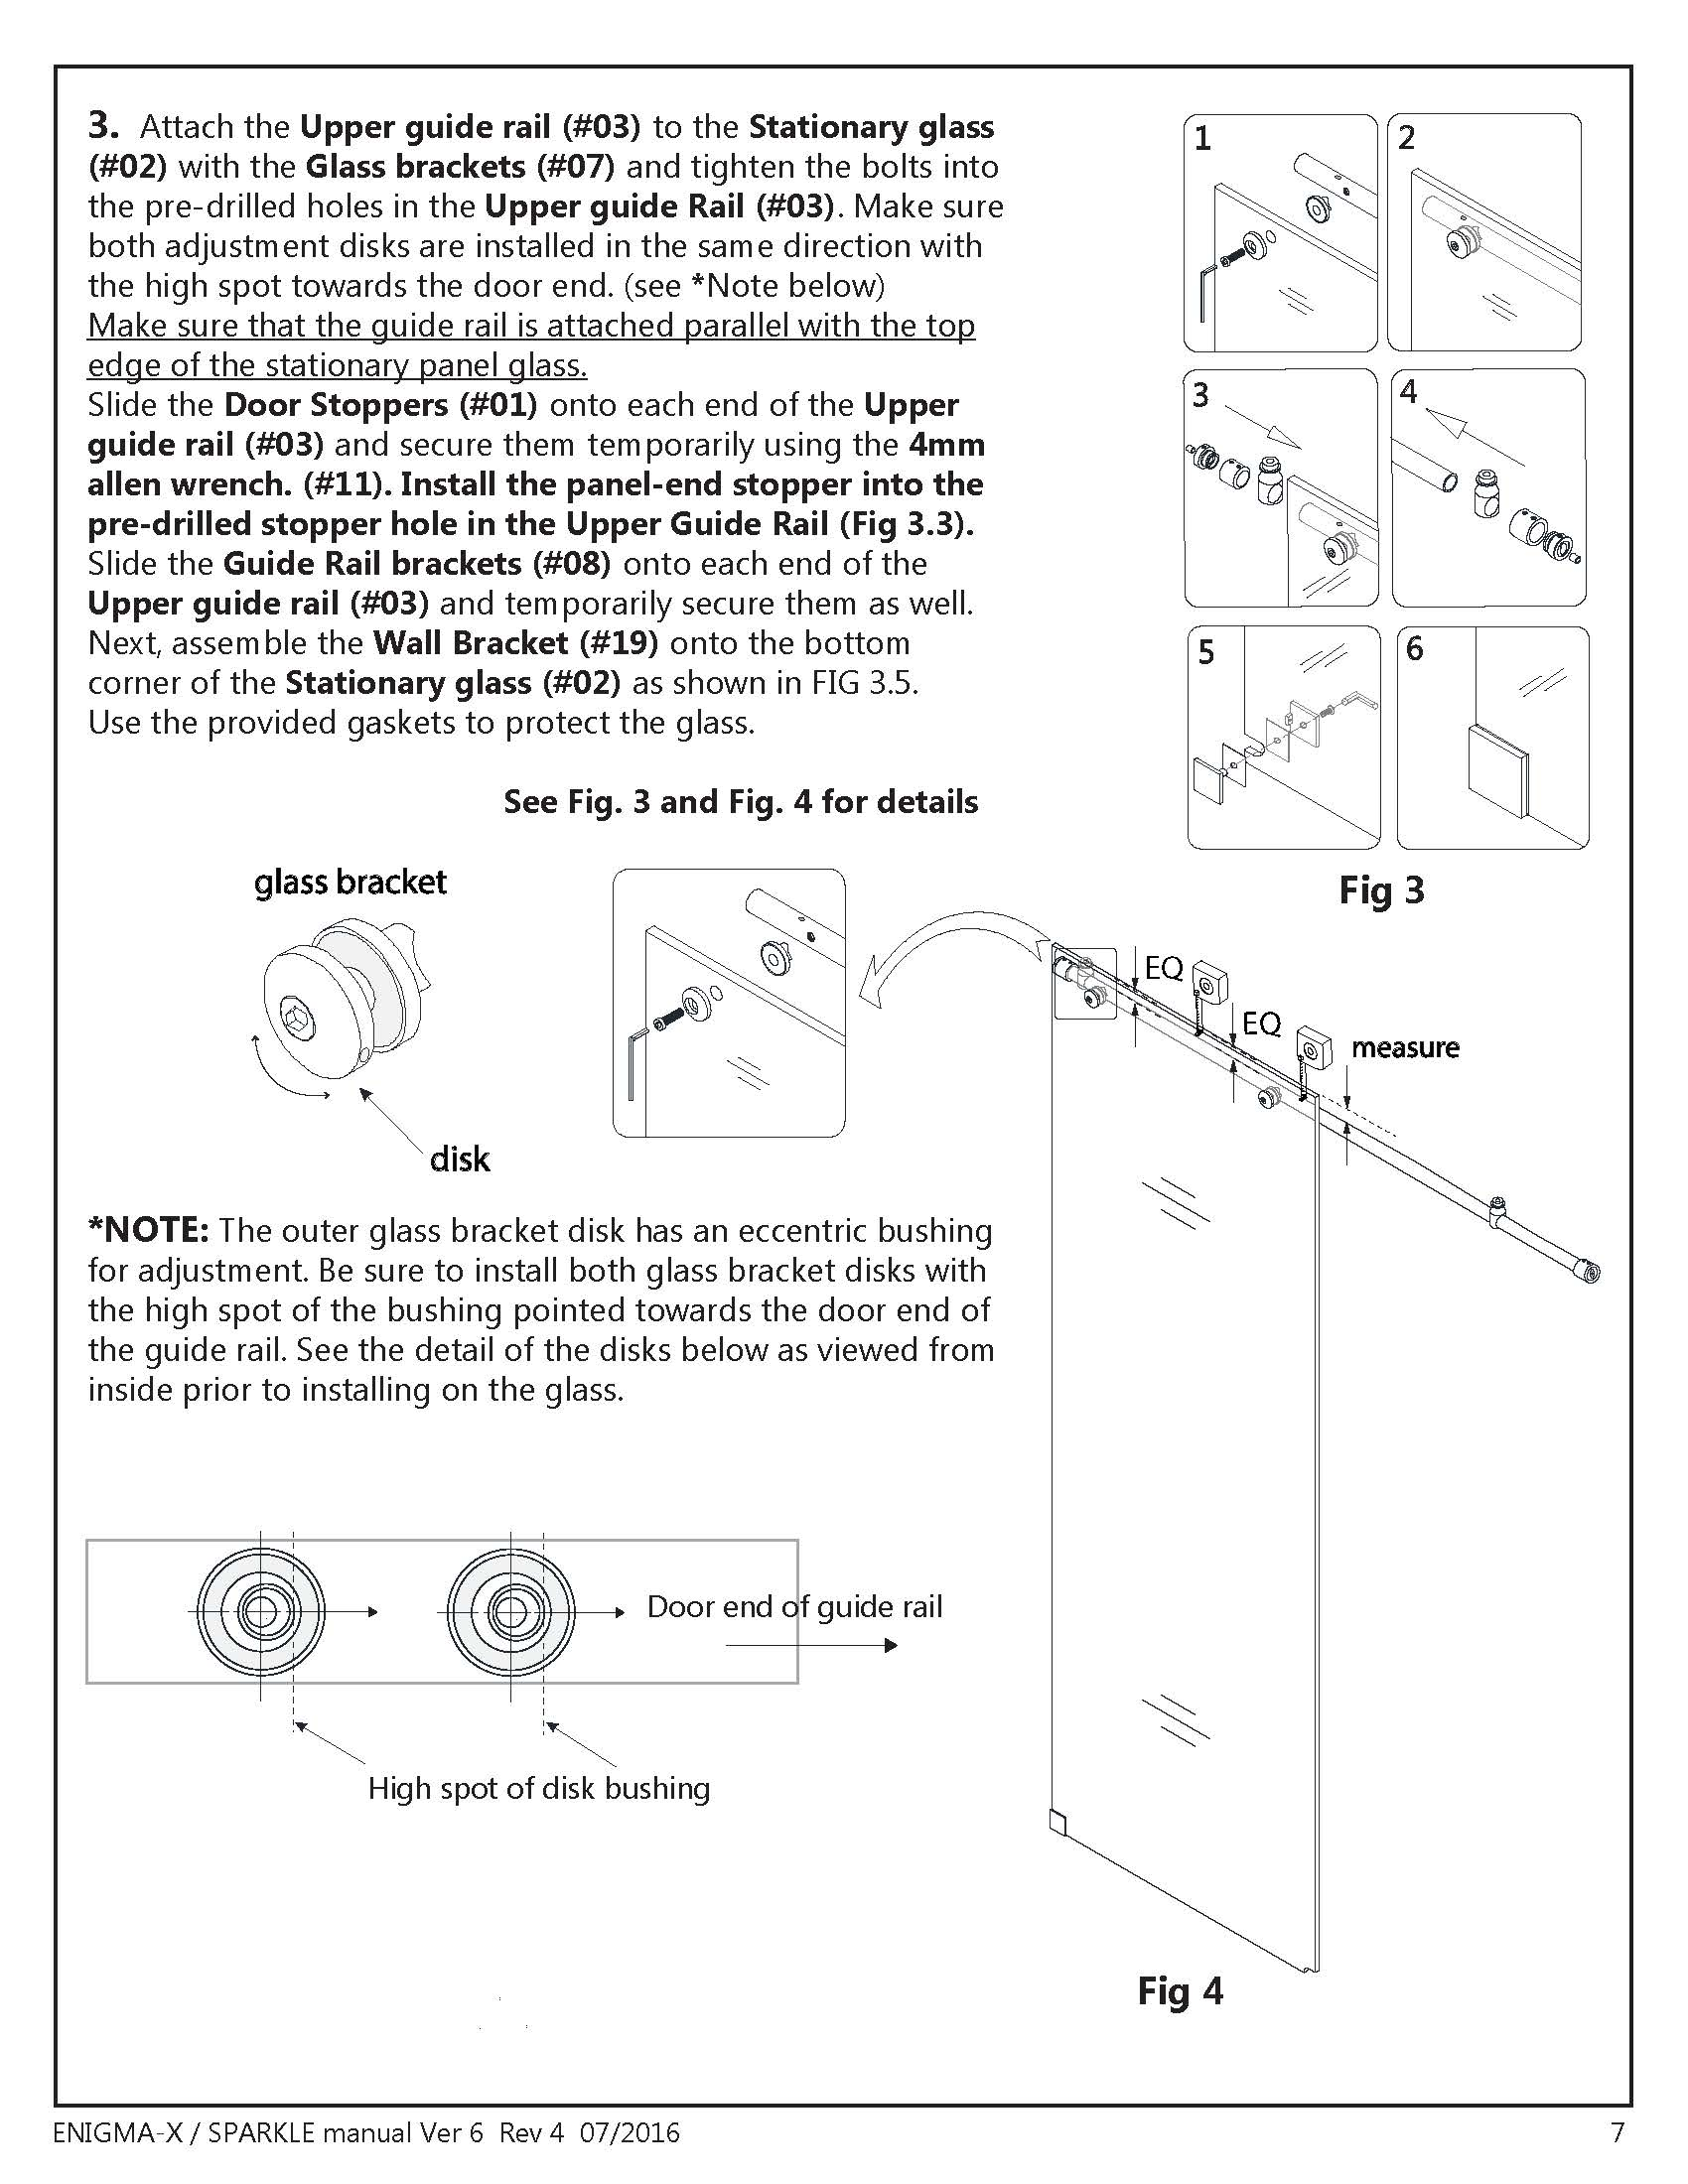 DreamLine Enigma X glass shower door Install manual FIg. 3 & 4